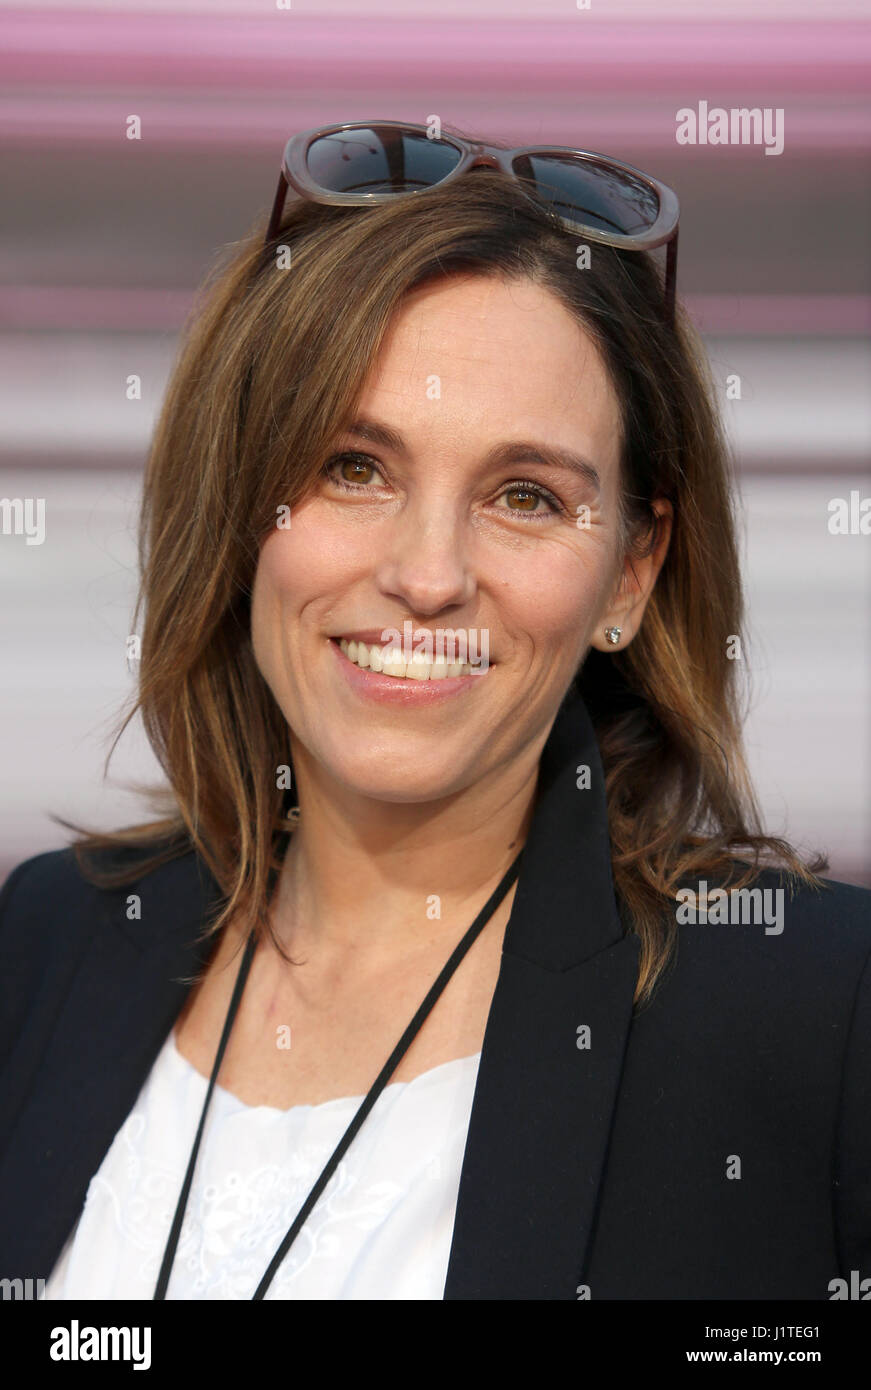 With Amy jo johnson power rangers suggest